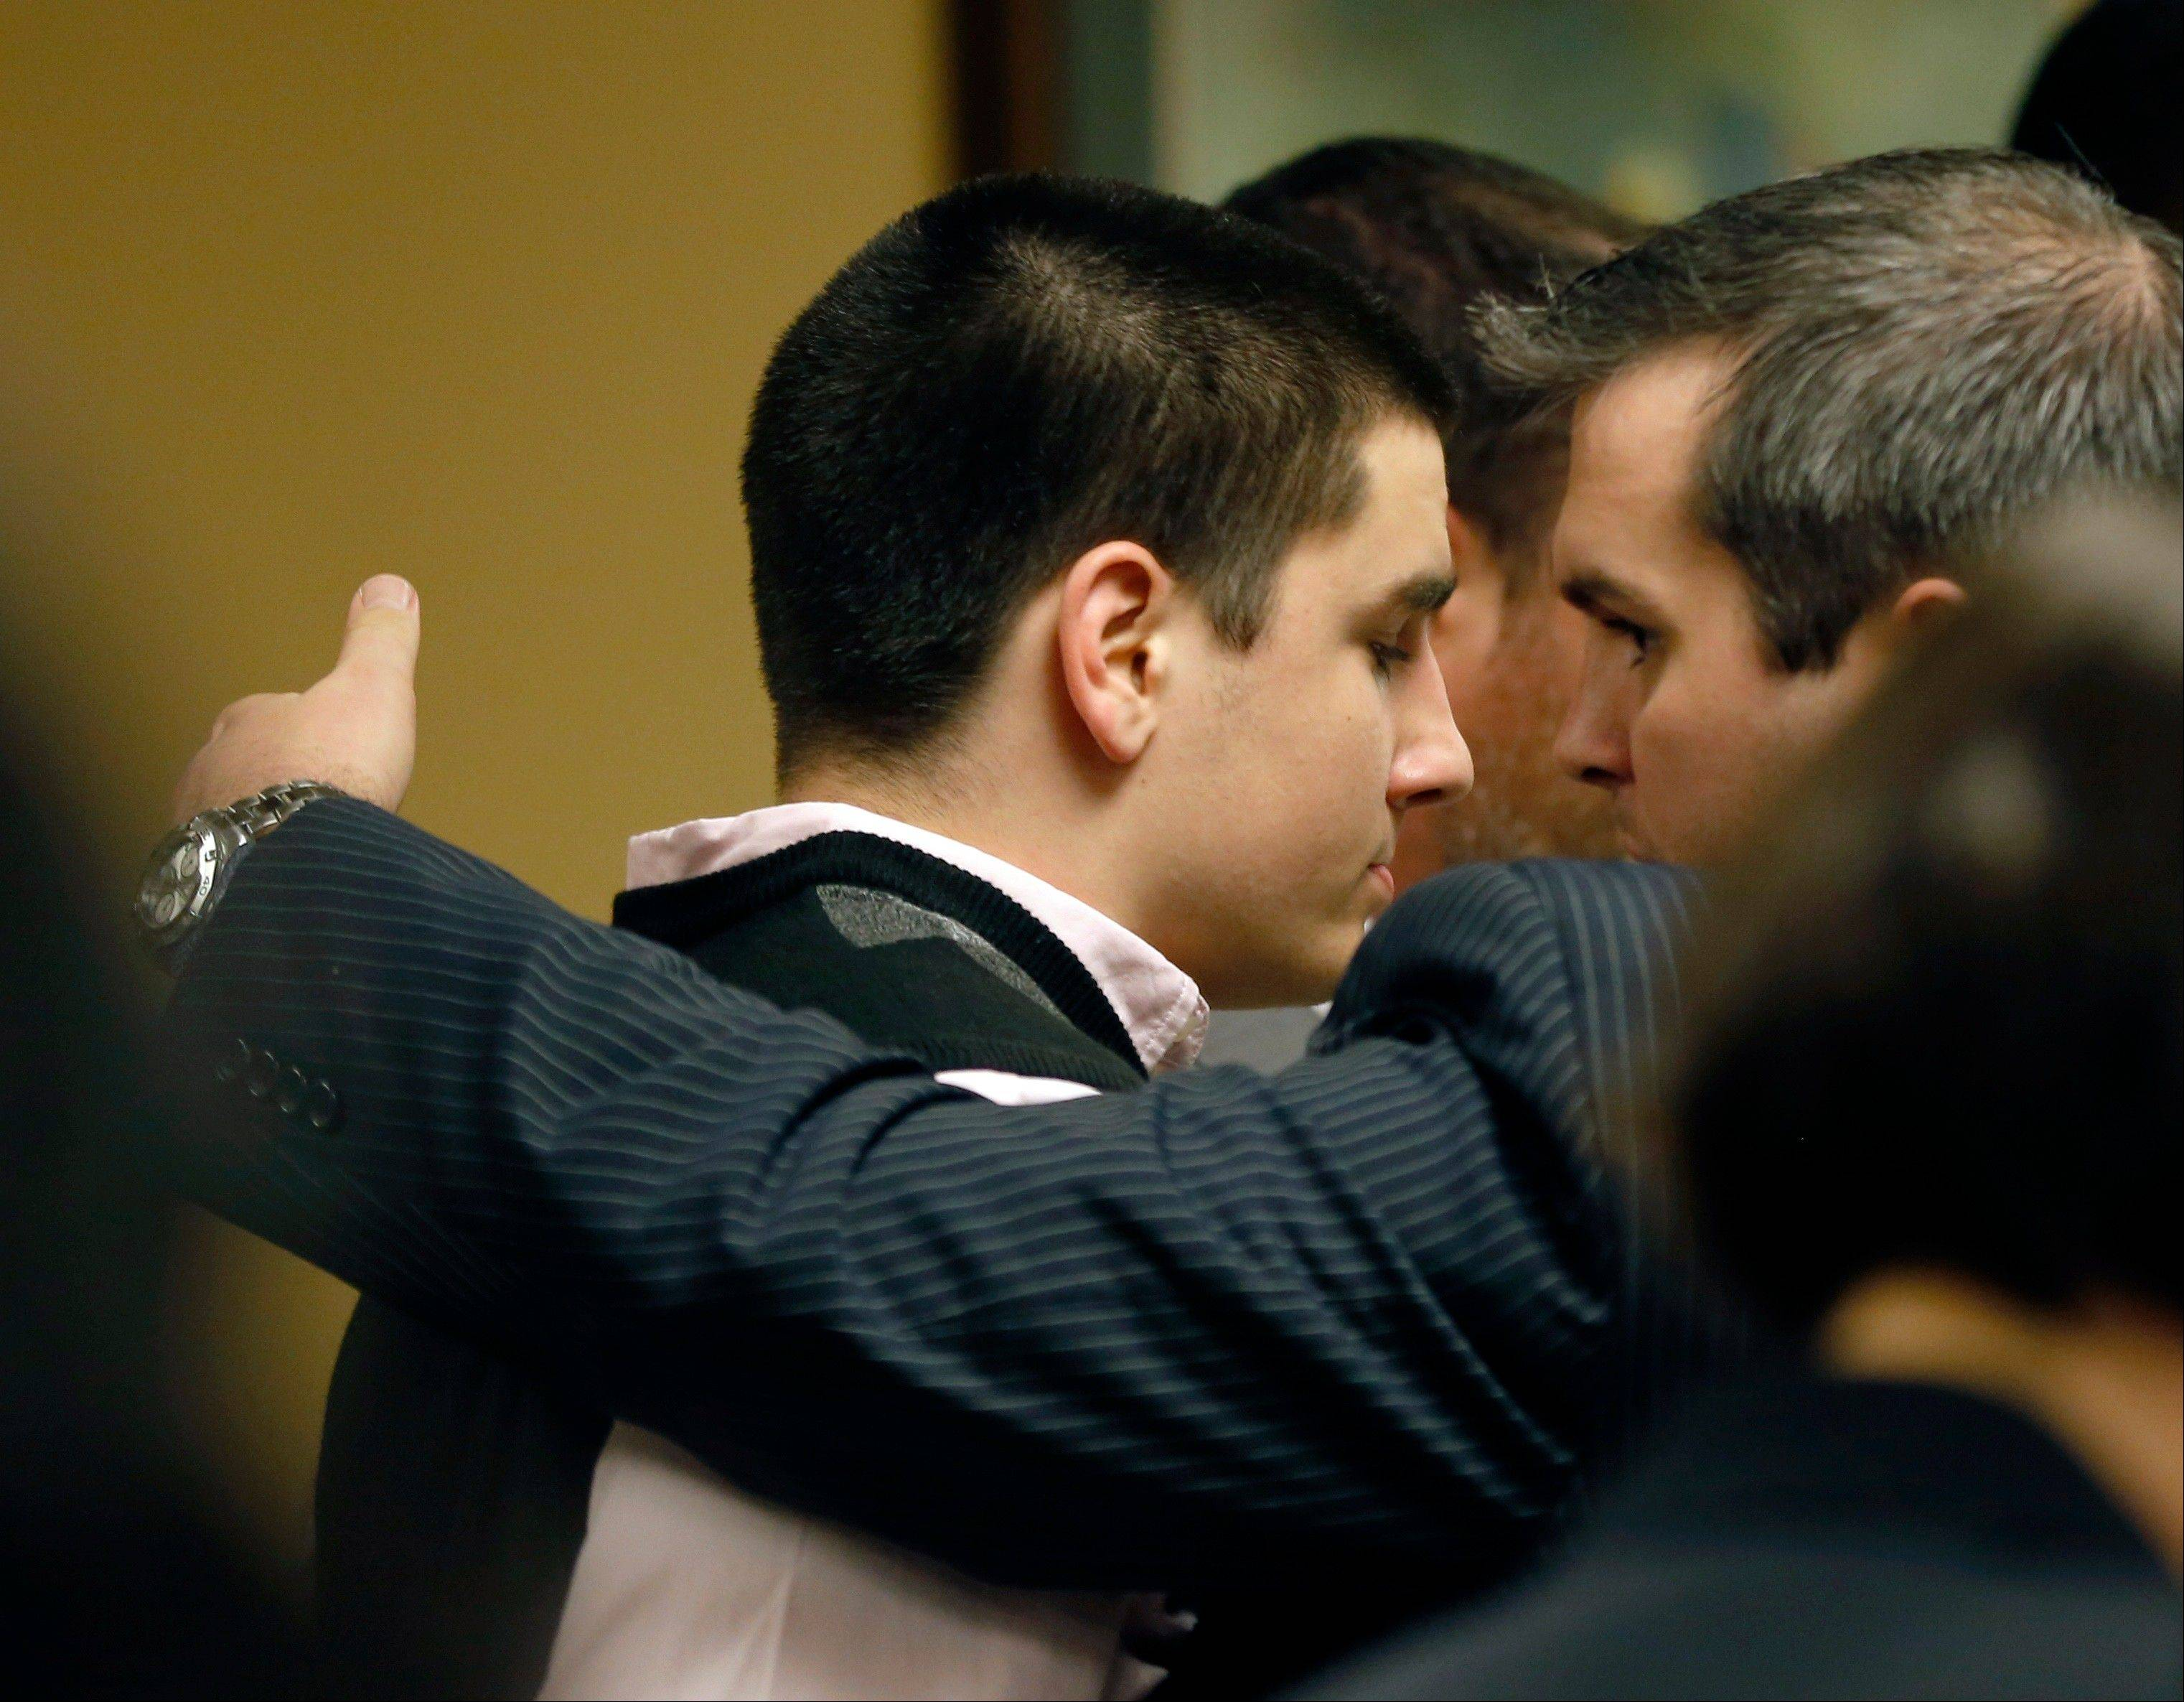 Trent Mays, 17, left, is hugged by one of his lawyers, Brian Duncan, after closing arguments in the juvenile trial for him and co-defendant Ma�lik Richmond, 16, on rape charge.